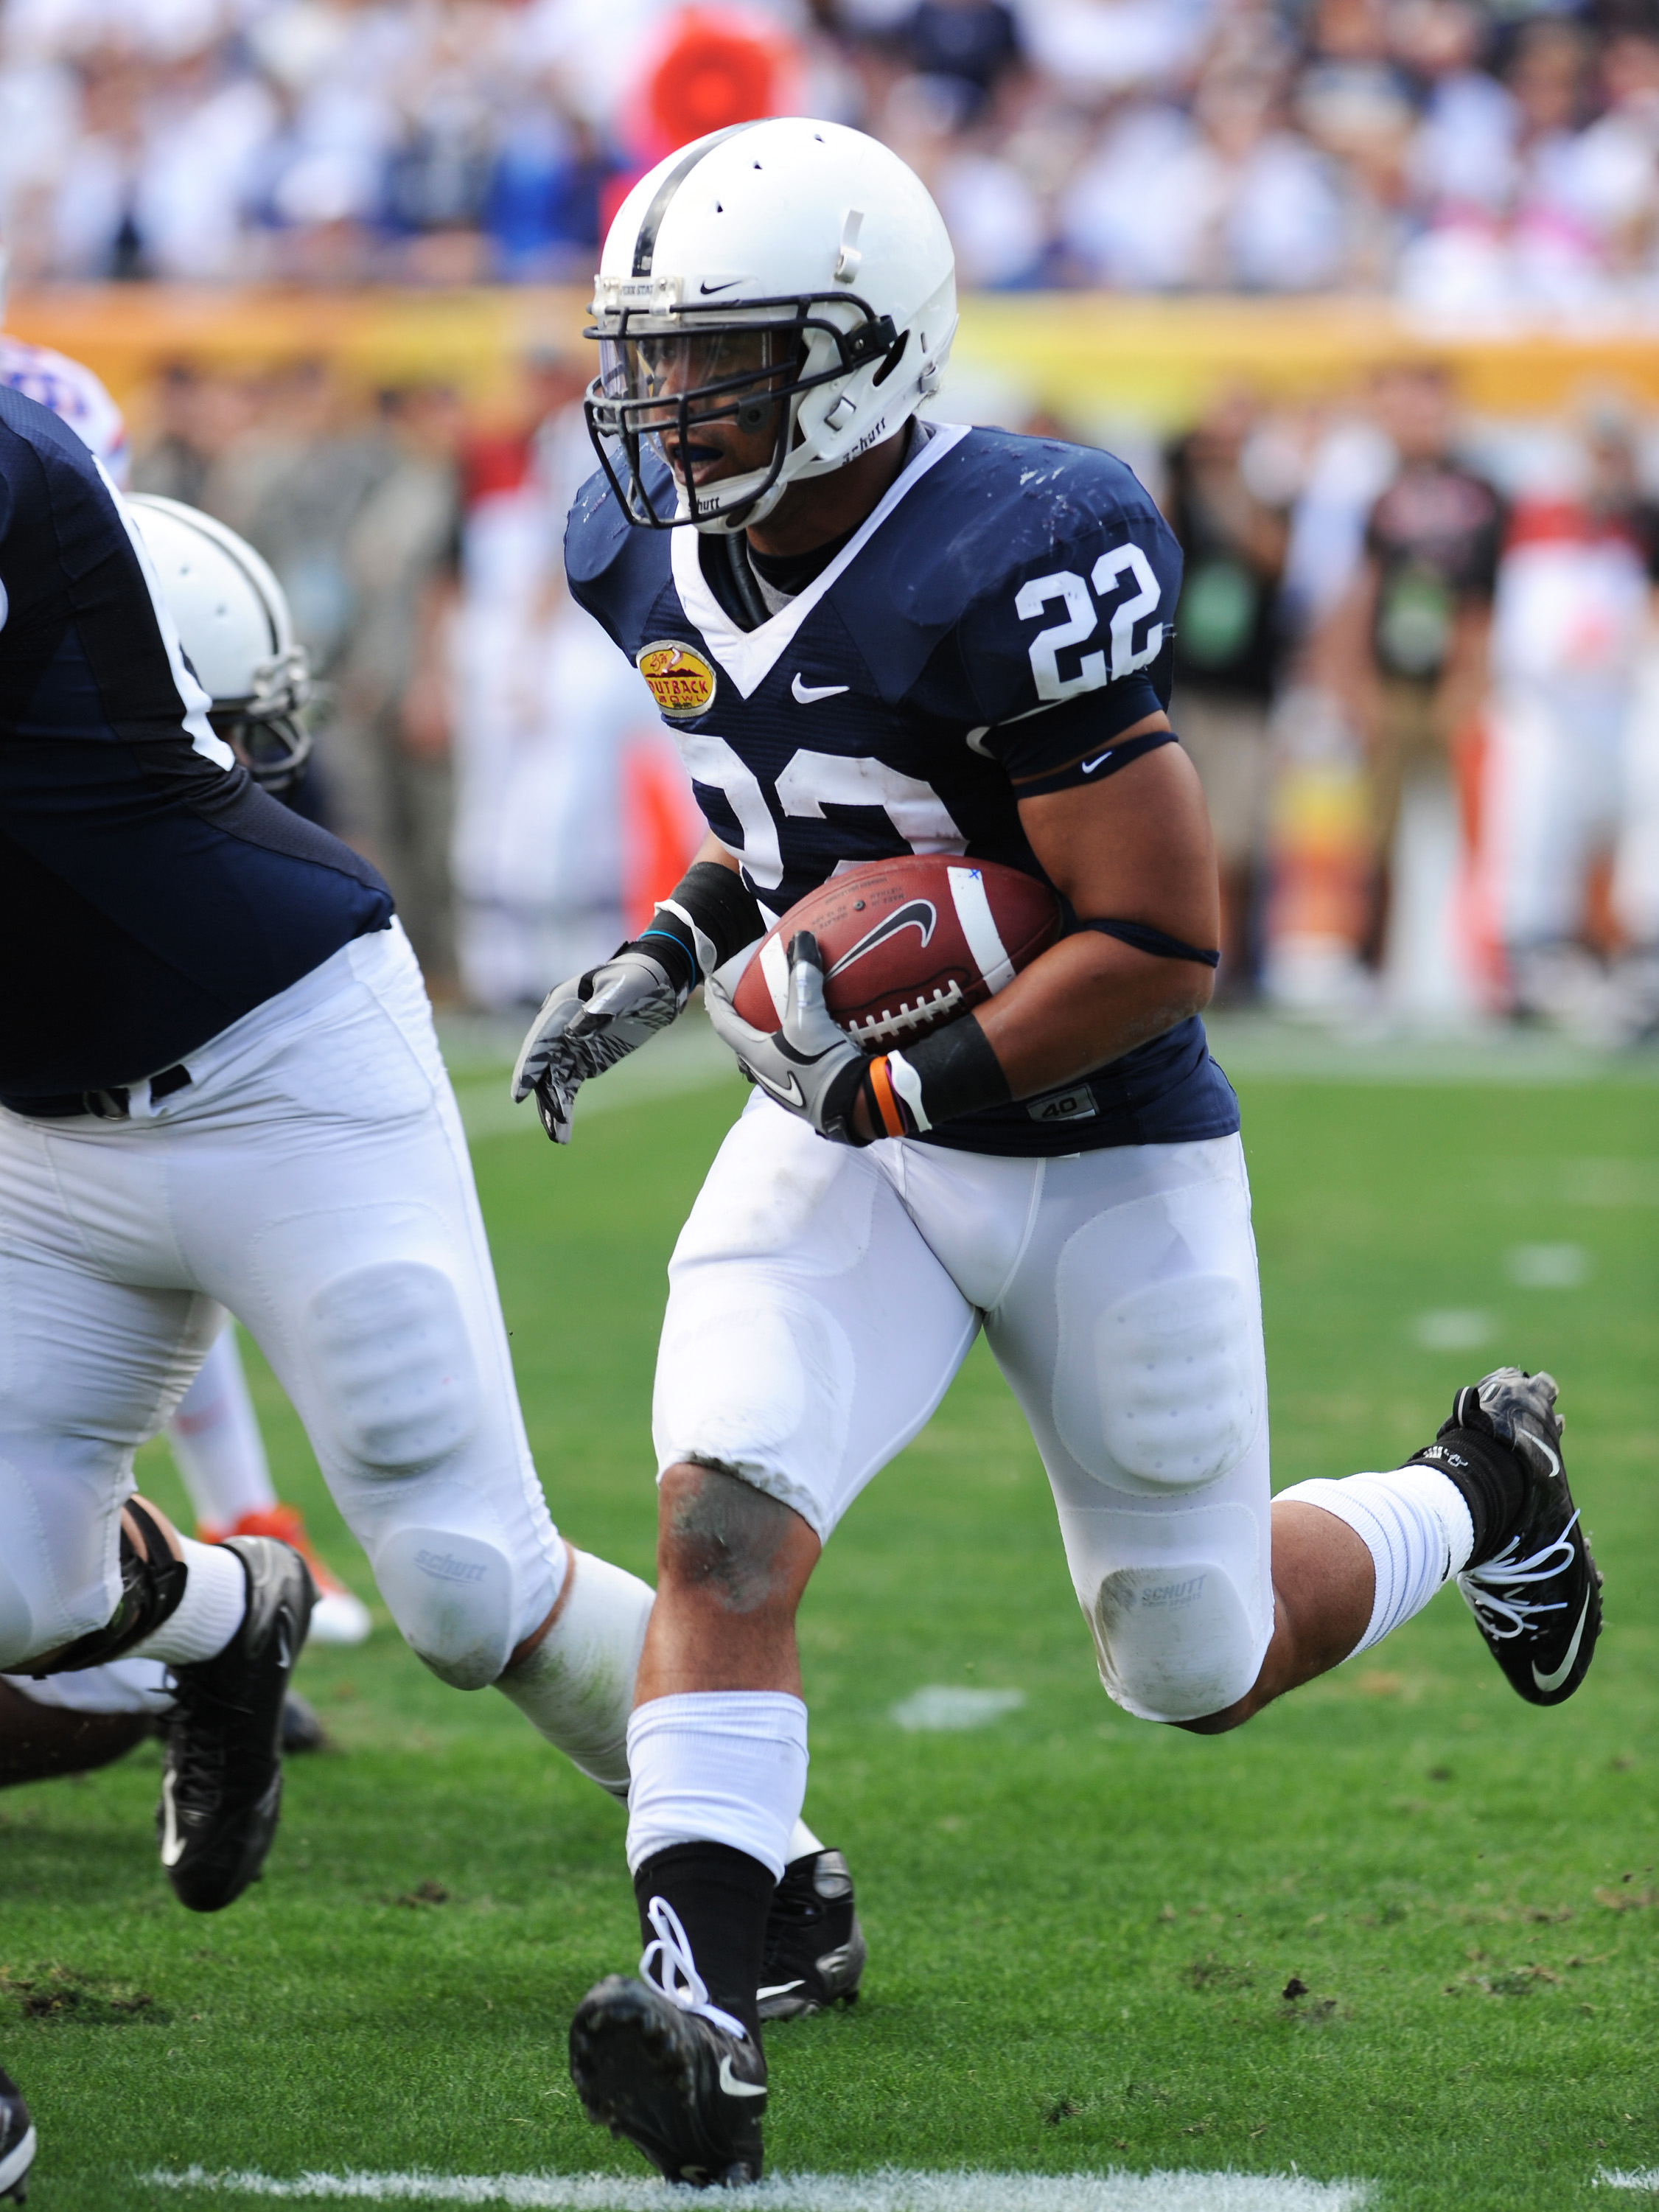 TAMPA, FL - JANUARY 1:  Running back Evan Royster #22 of the Penn State Nittany Lions rushes upfield against the Florida Gators January 1, 2010 in the 25th Outback Bowl at Raymond James Stadium in Tampa, Florida.  (Photo by Al Messerschmidt/Getty Images)